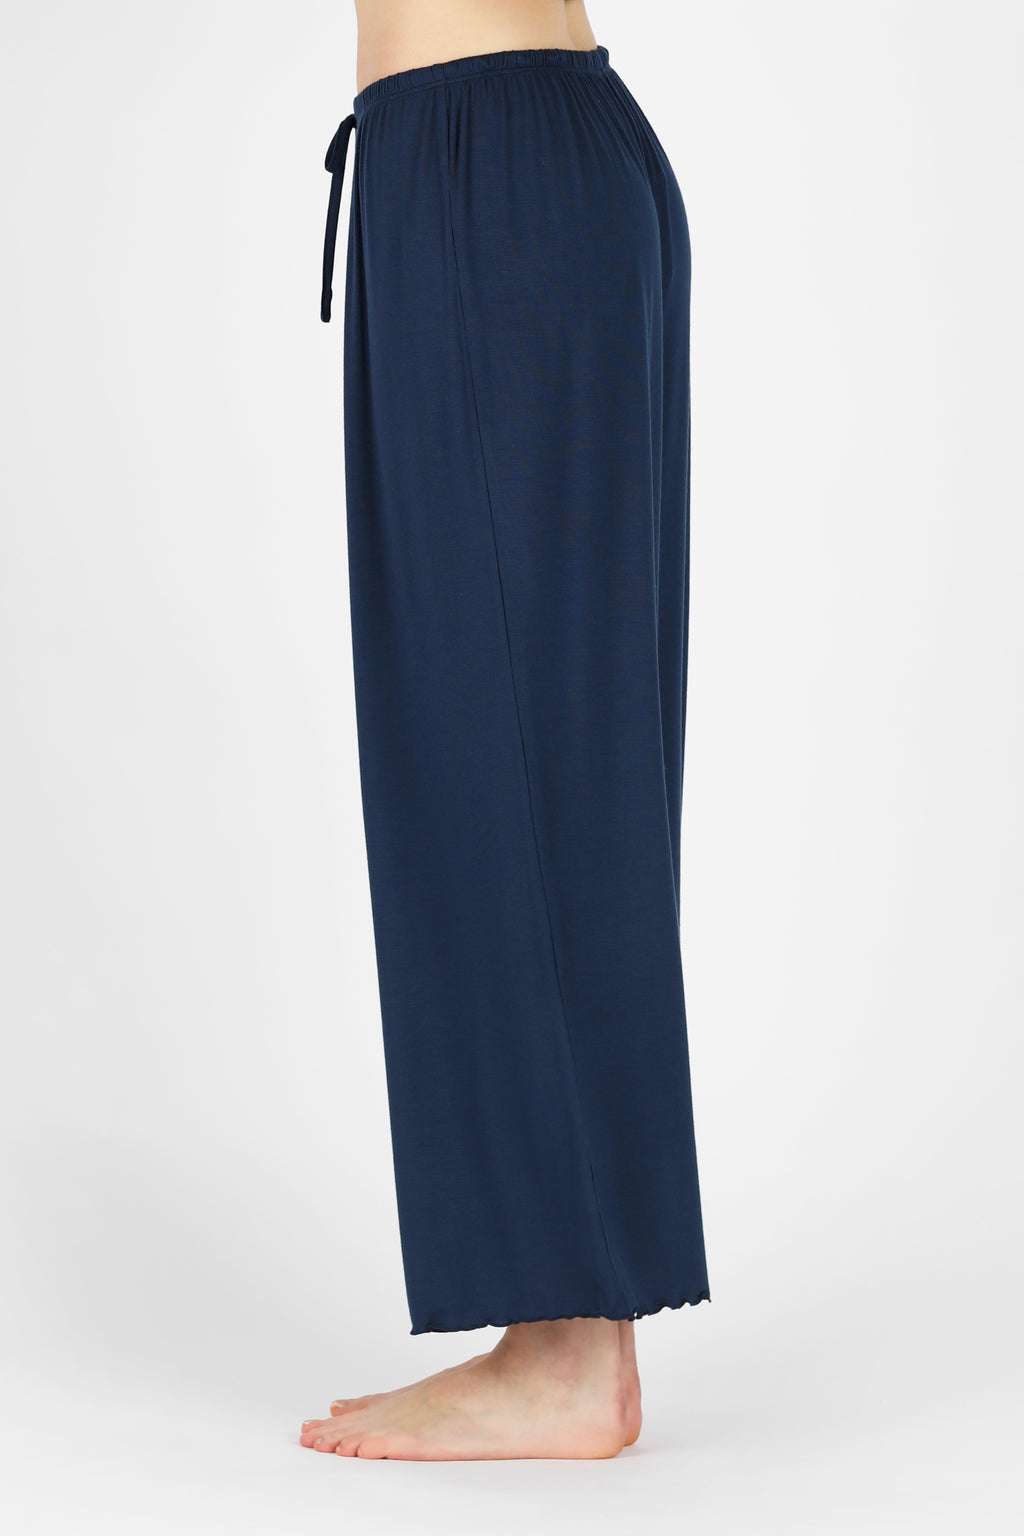 All-Day-Chic Pajama Pant - Navy blue